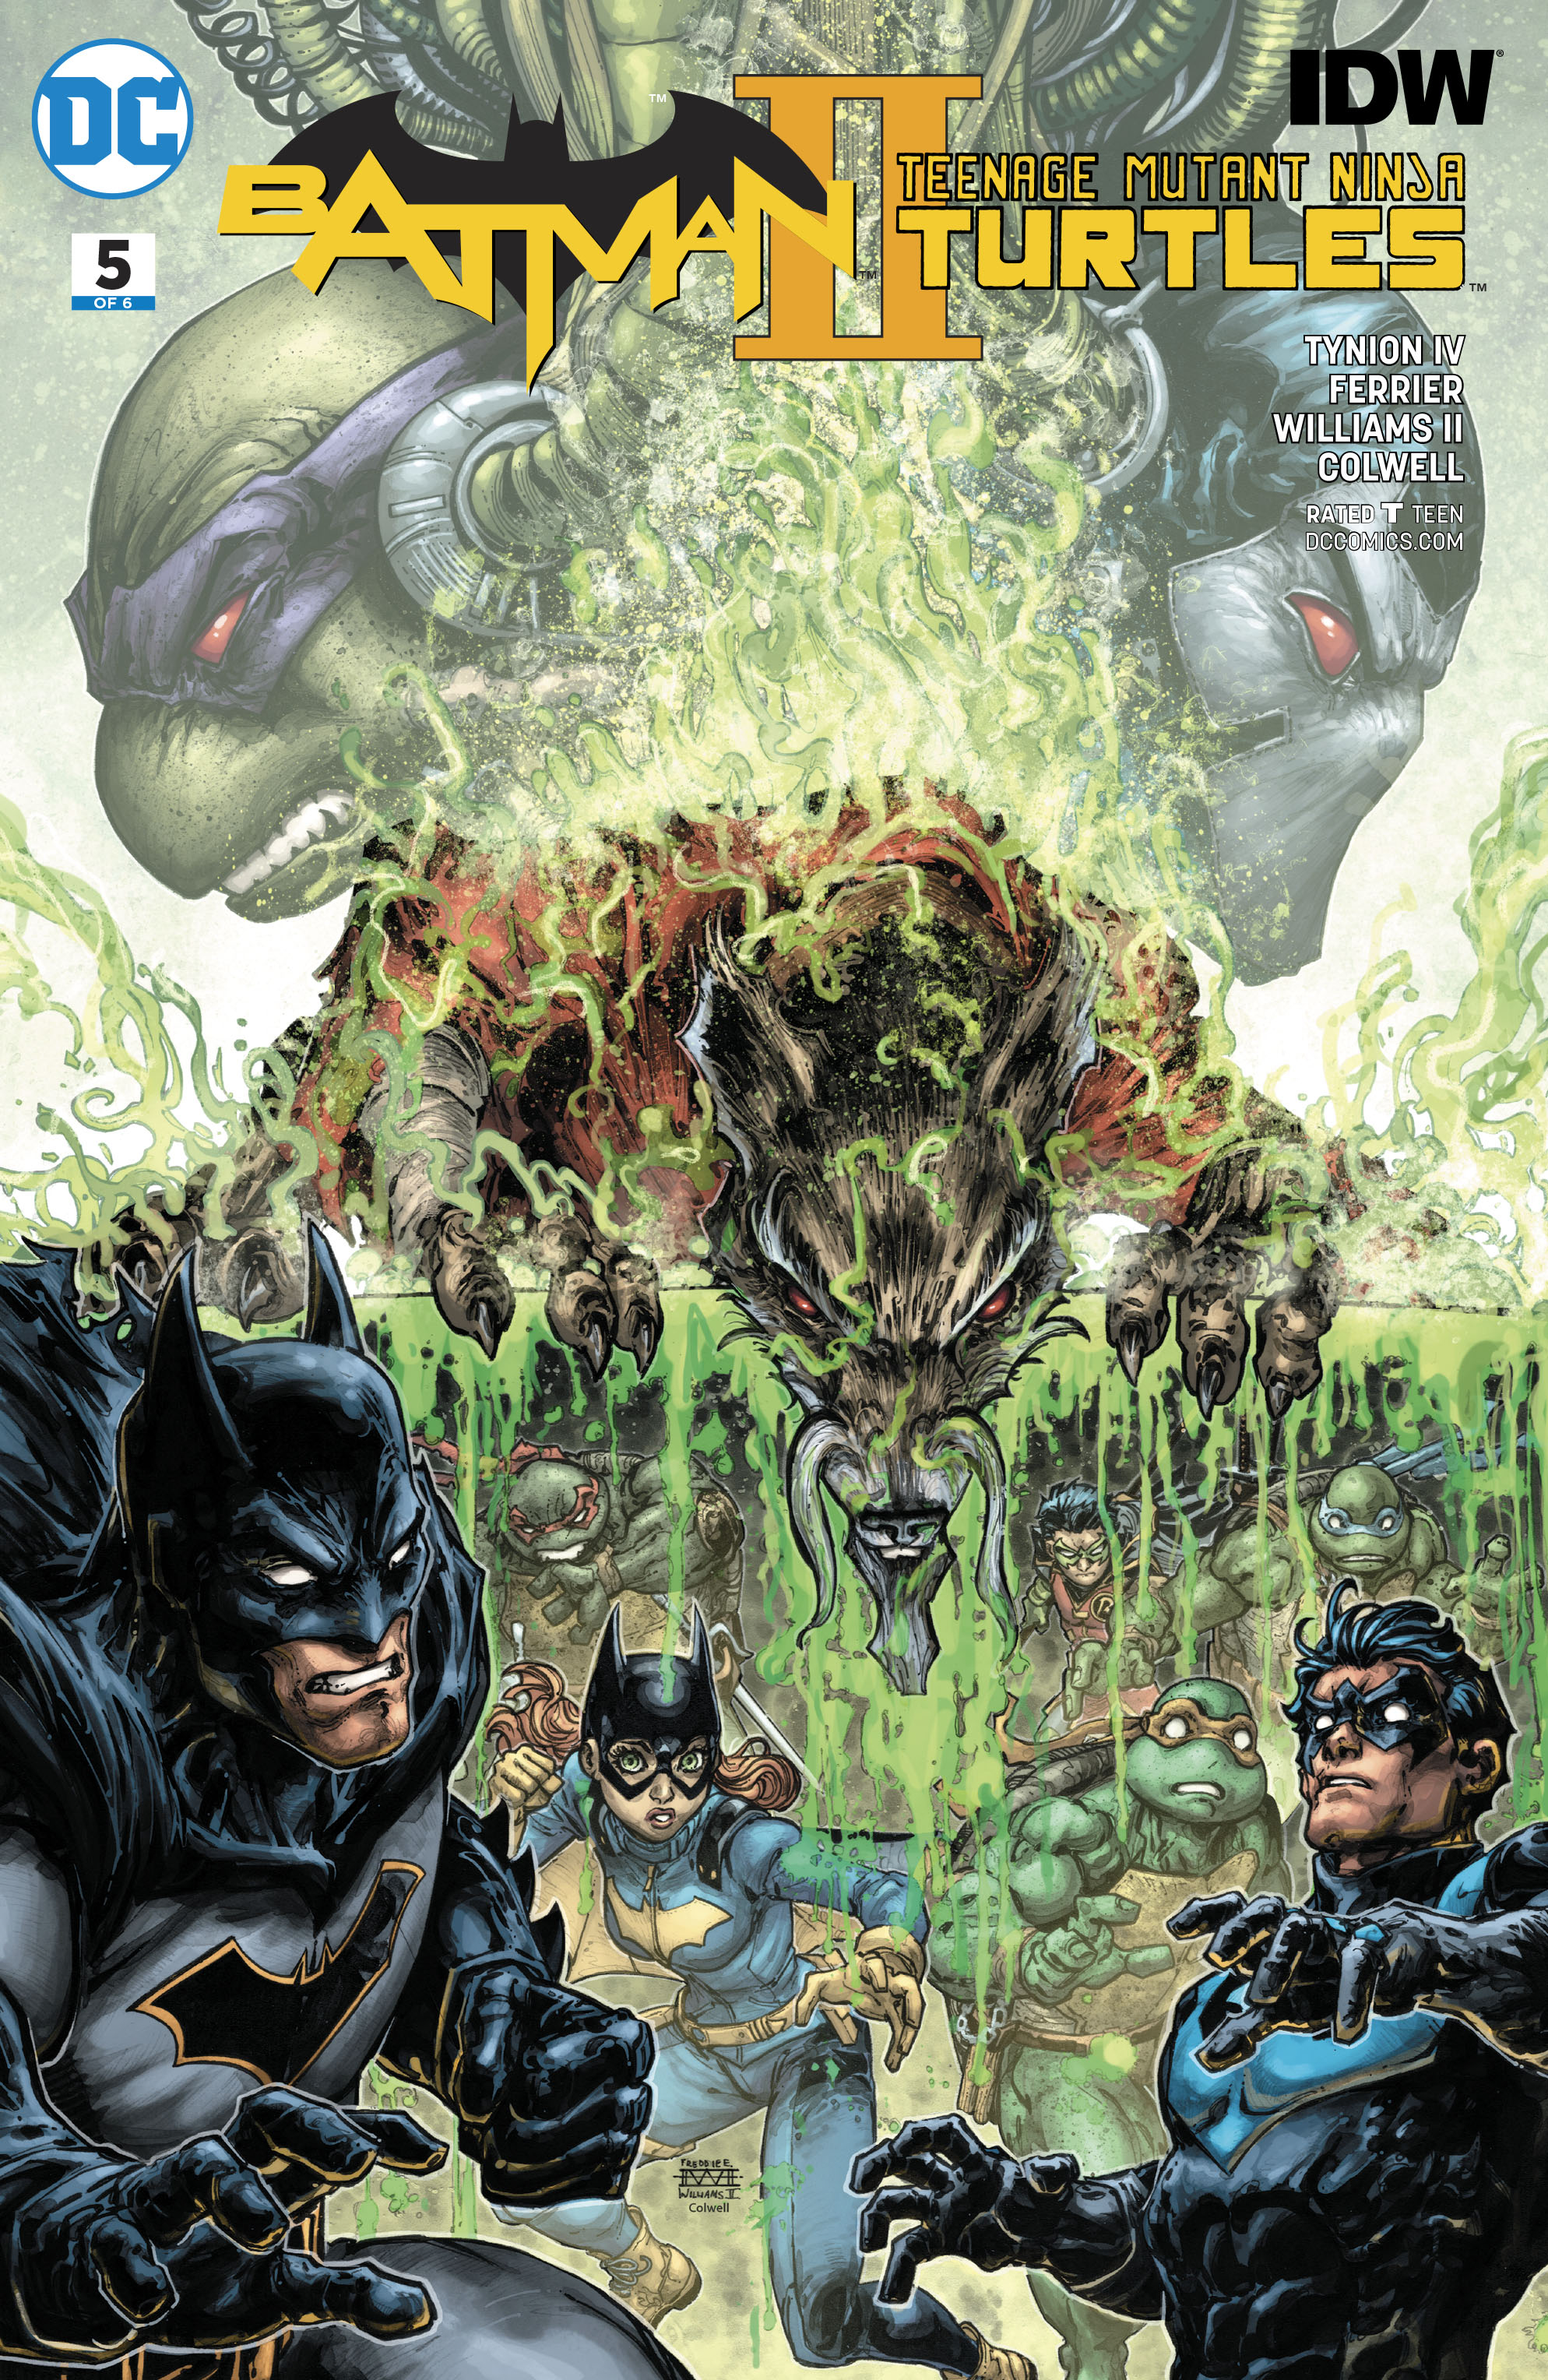 BATMAN TEENAGE MUTANT NINJA TURTLES II #5 (OF 6)